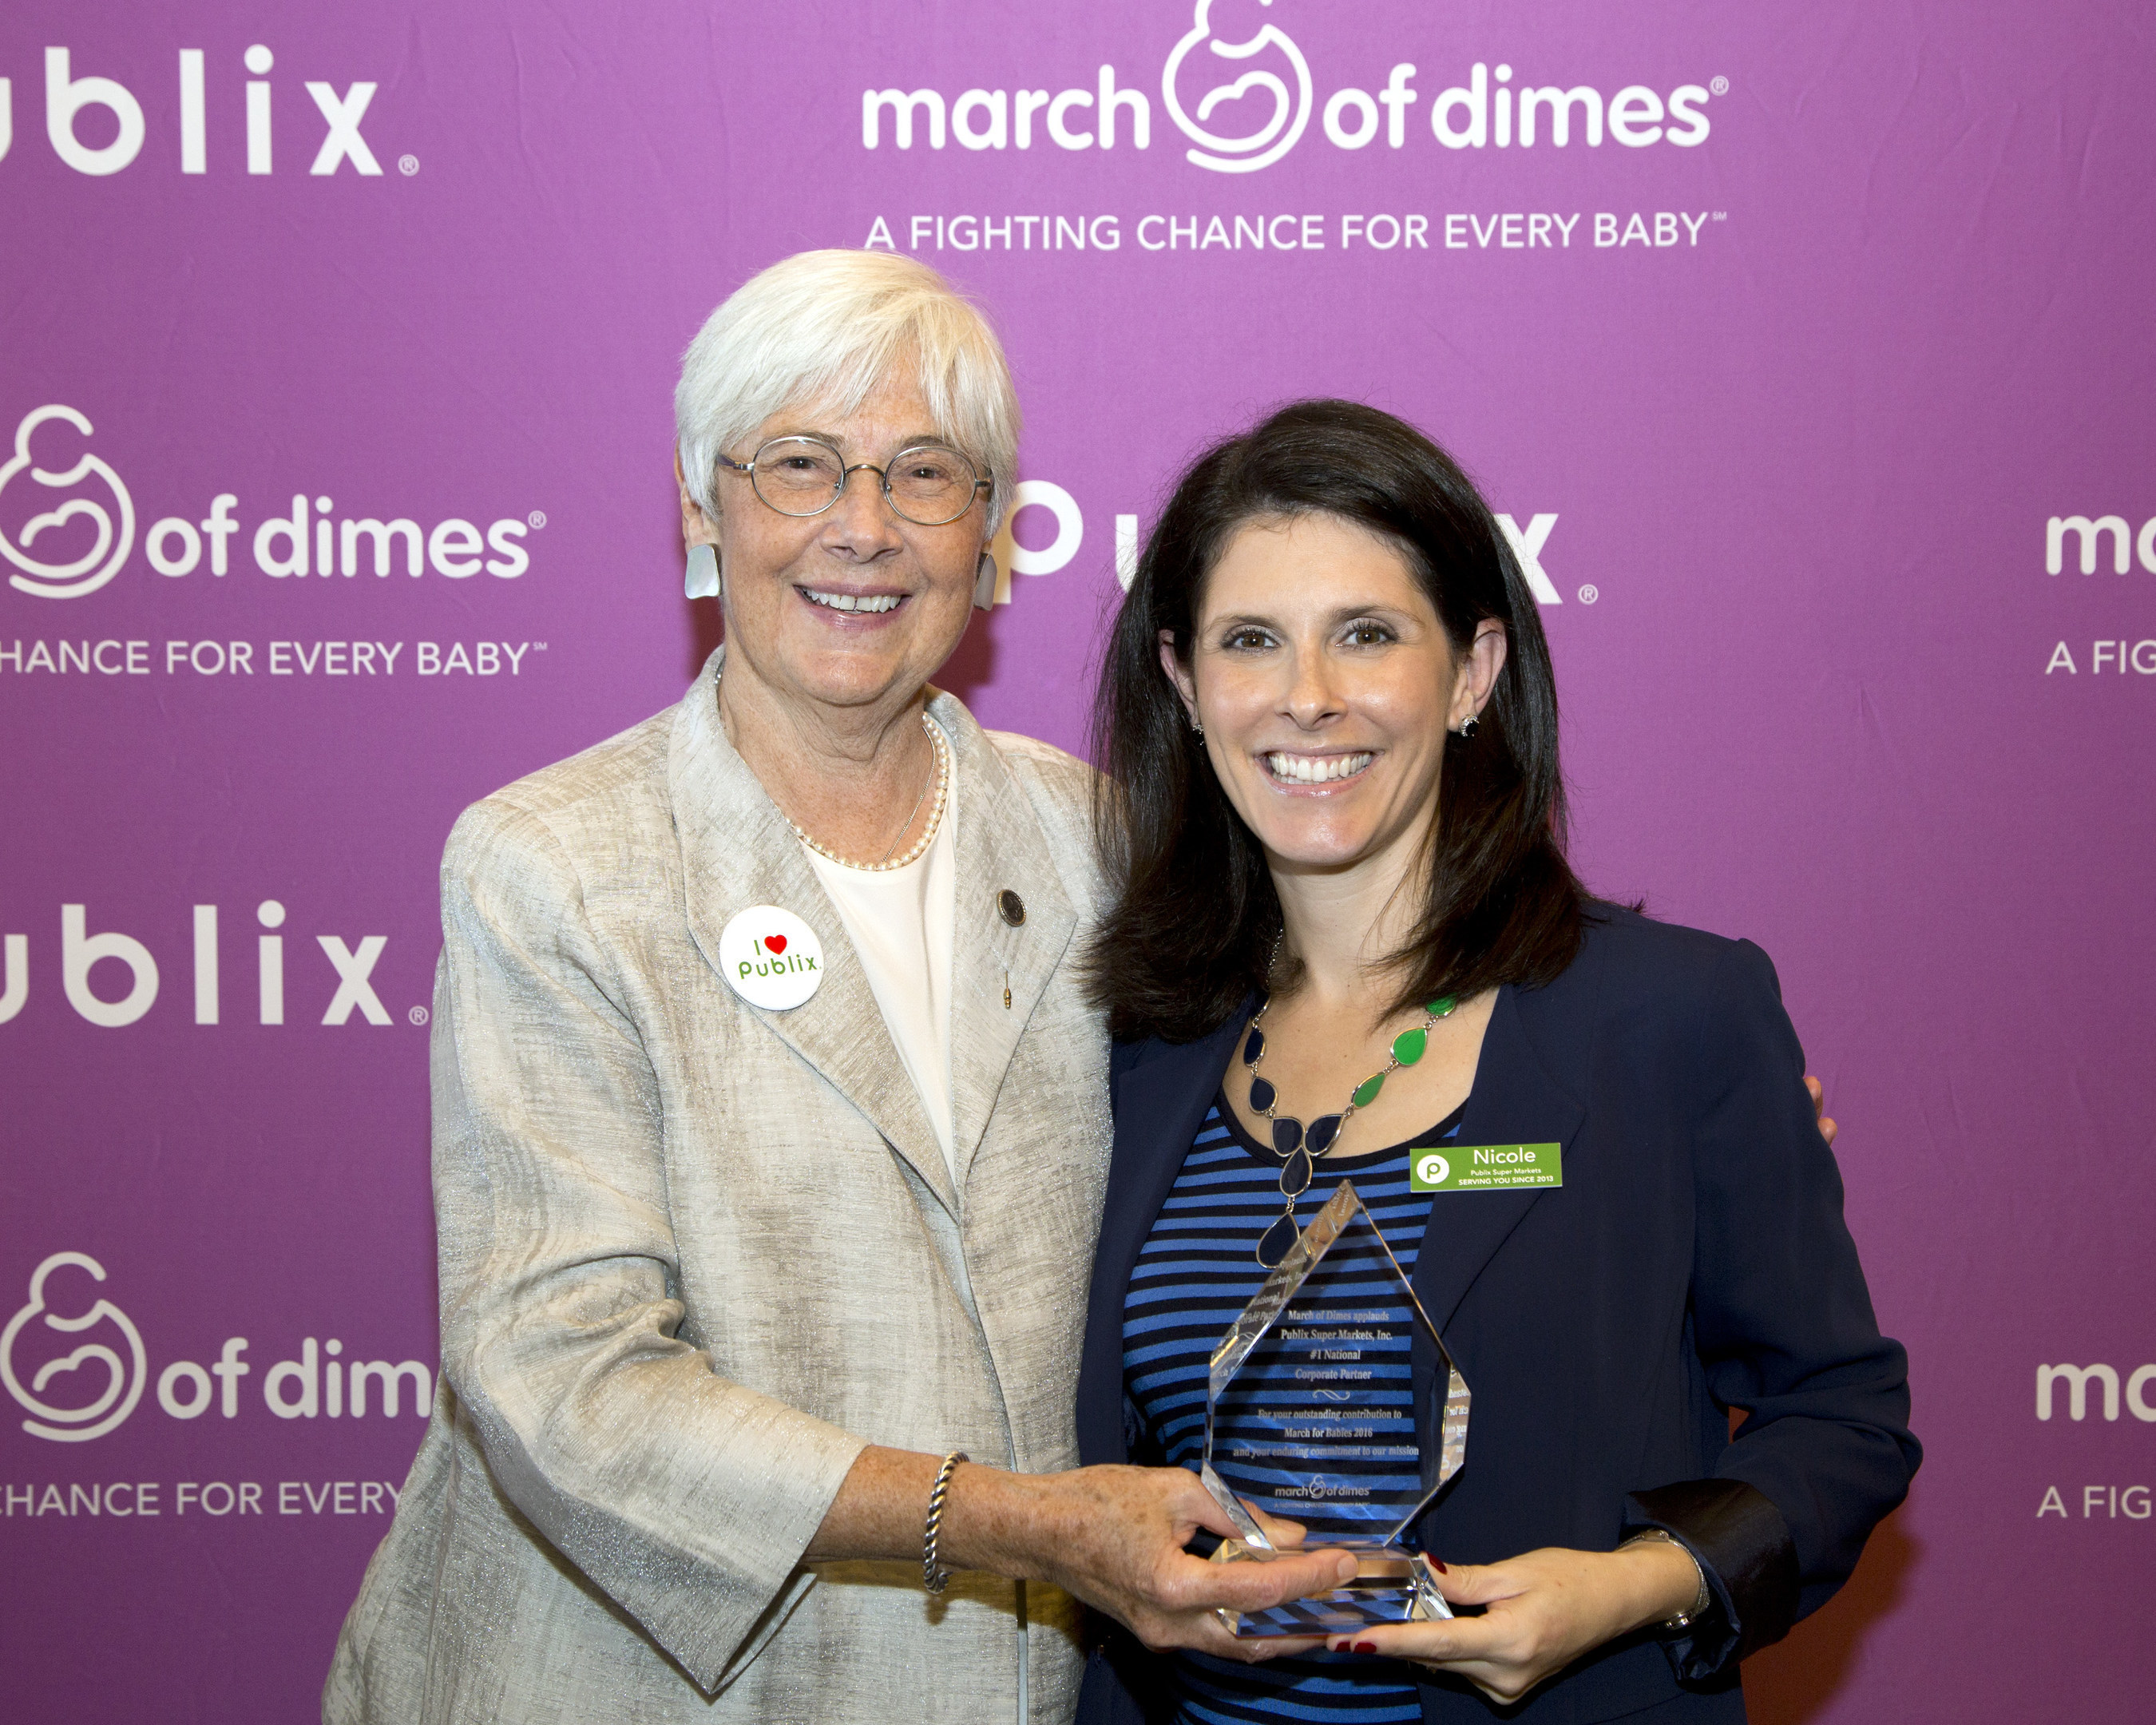 """""""March of Dimes announced Publix Super Markets, based in Lakeland, Florida, is the new number one national 2016 March for Babies corporate partner.  With 1,120 stores in six states, Publix associates and customers raised $7.3 million, bringing their 21-year partnership total to an impressive contribution of $65 million.  Pictured here - Nicole Krauss, Publix Super Markets Media and Community Relations Manager accepting congratulations from March of Dimes President, Dr. Jennifer L. Howse."""""""